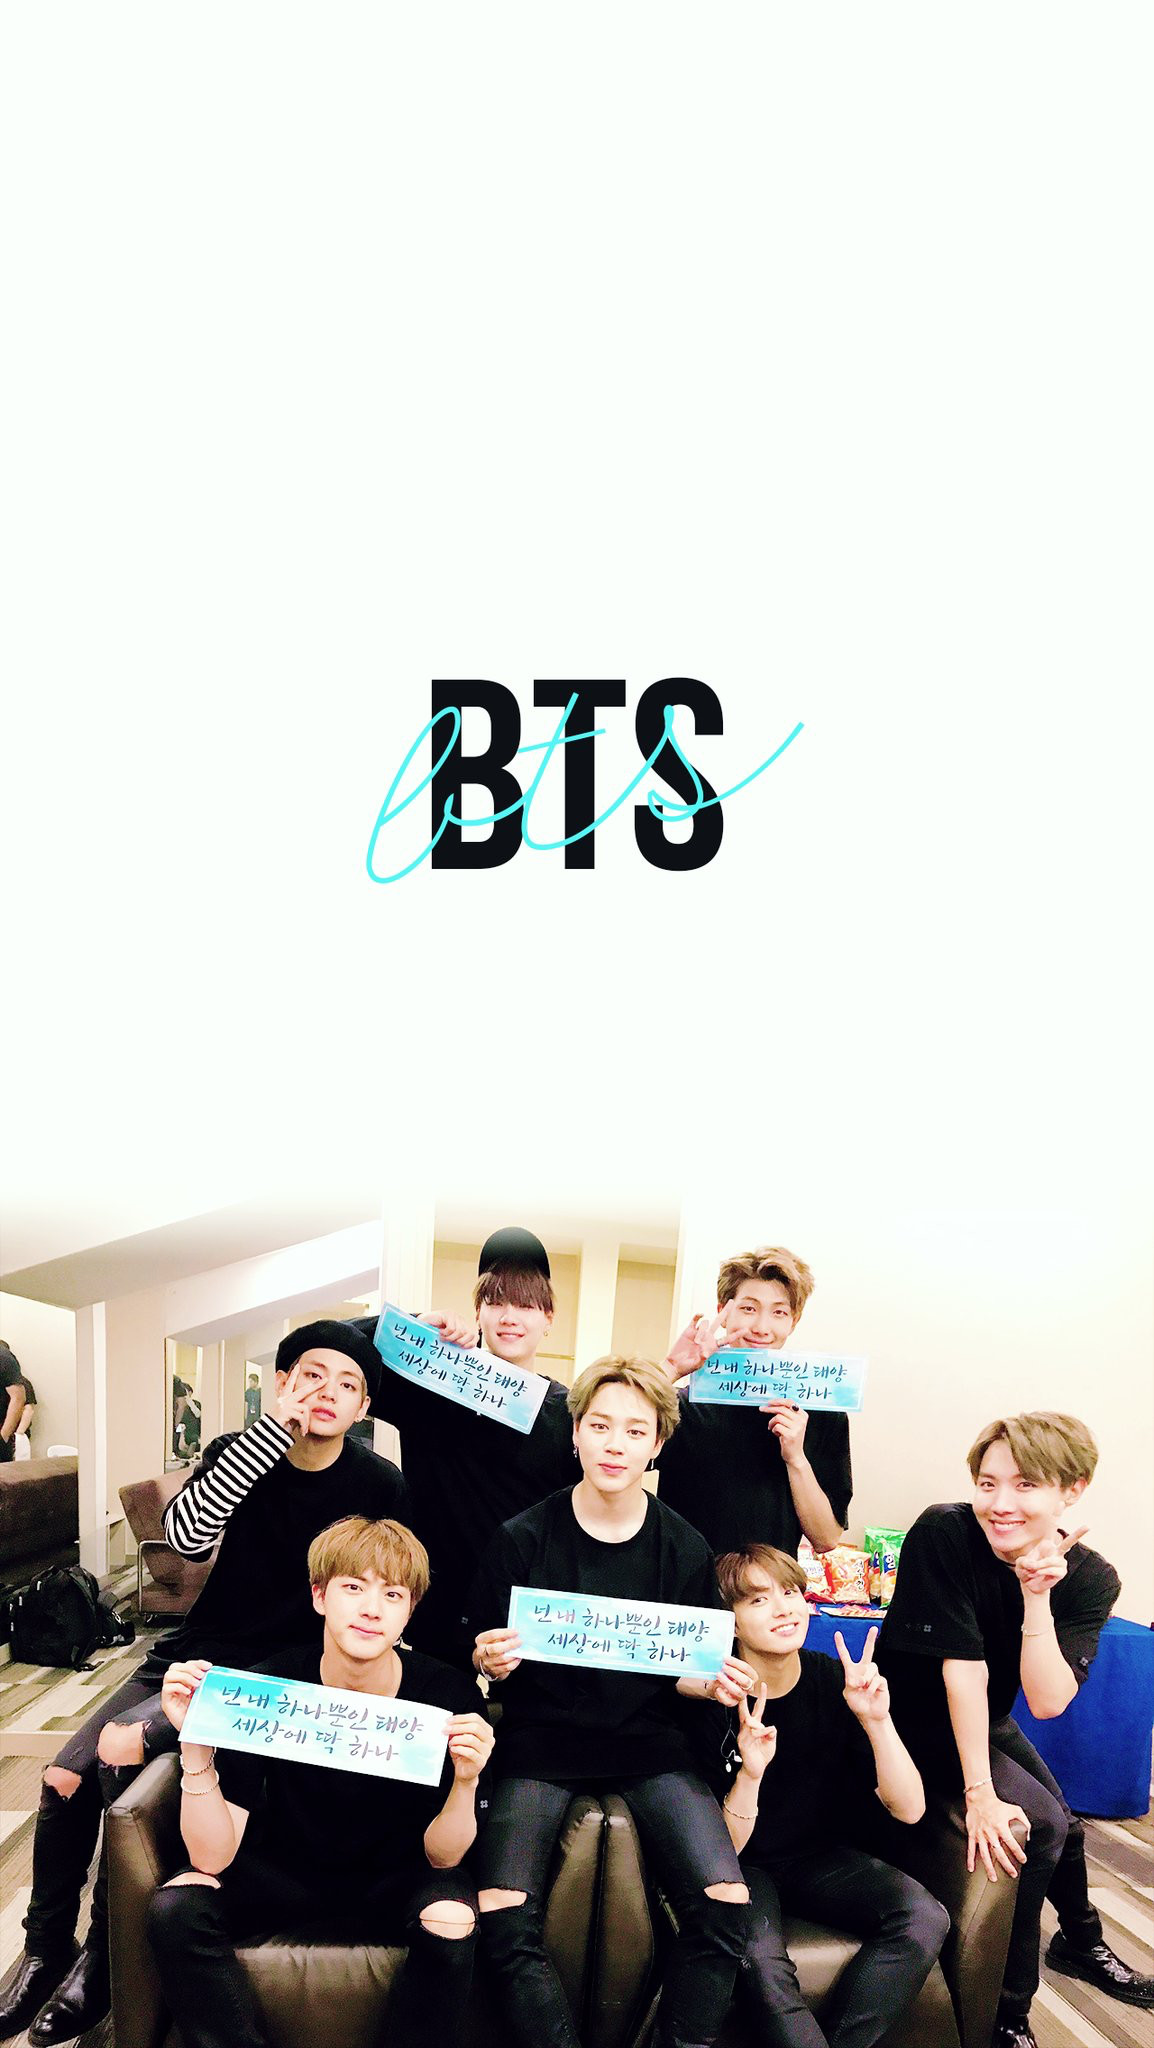 Cute Iphone 5s Wallpaper Bts Wallpapers 71 Images